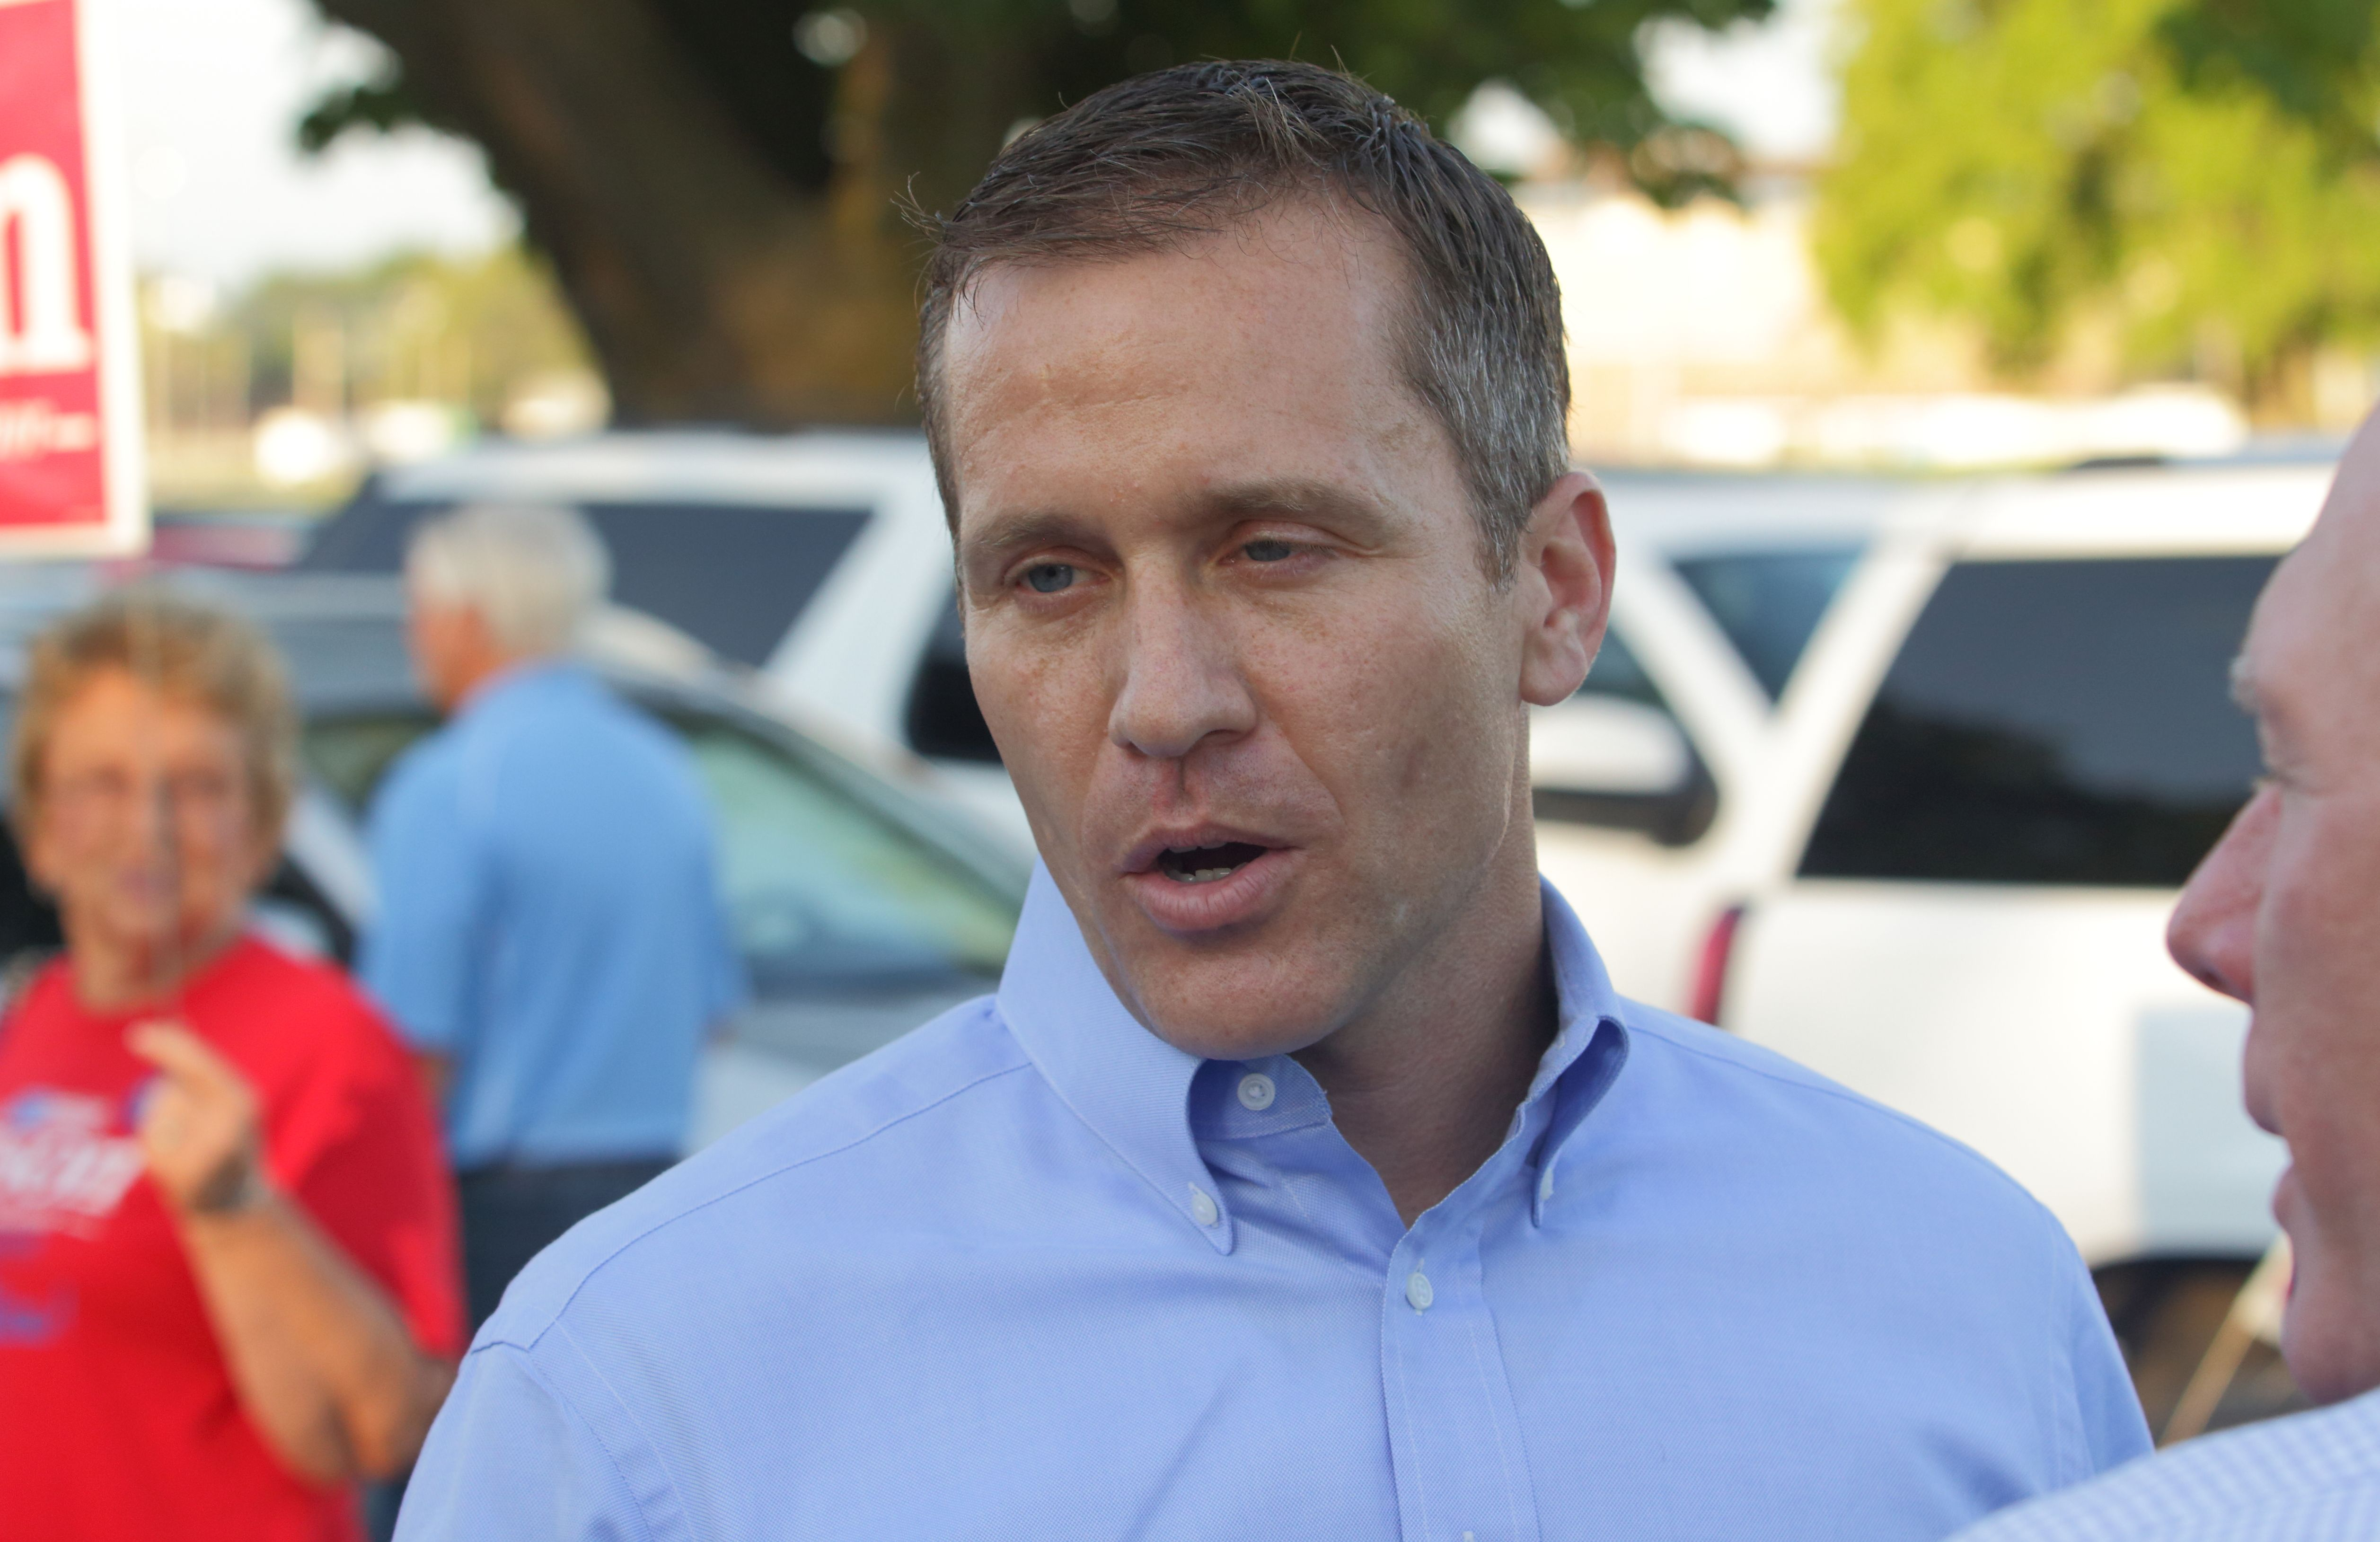 jay ashcroft show me progress eric greitens r the republican party nominee for governor